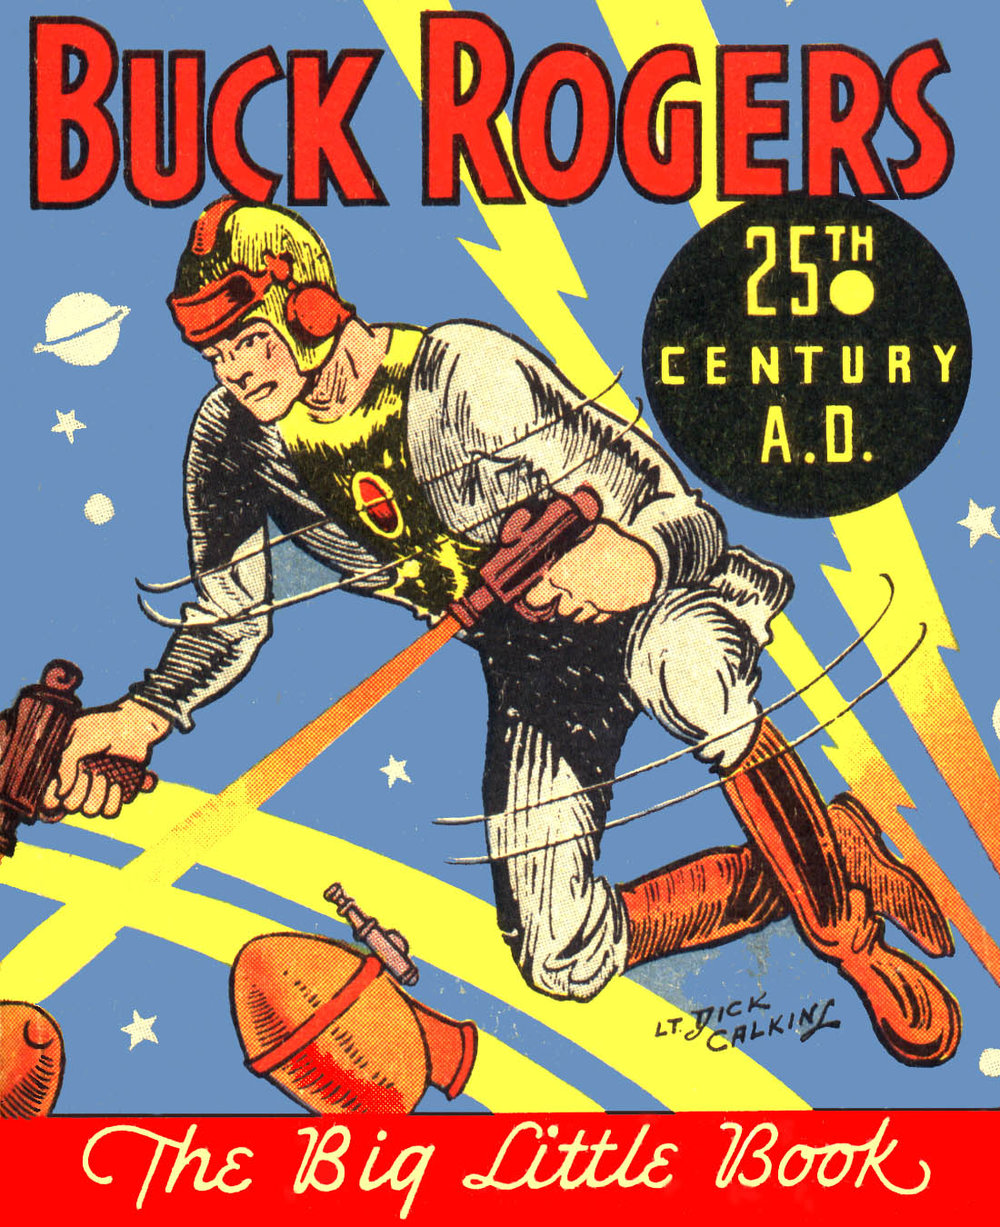 Buck Rogers' first appearance in the popular pulp-magazine  Amazing Stories  (1928)